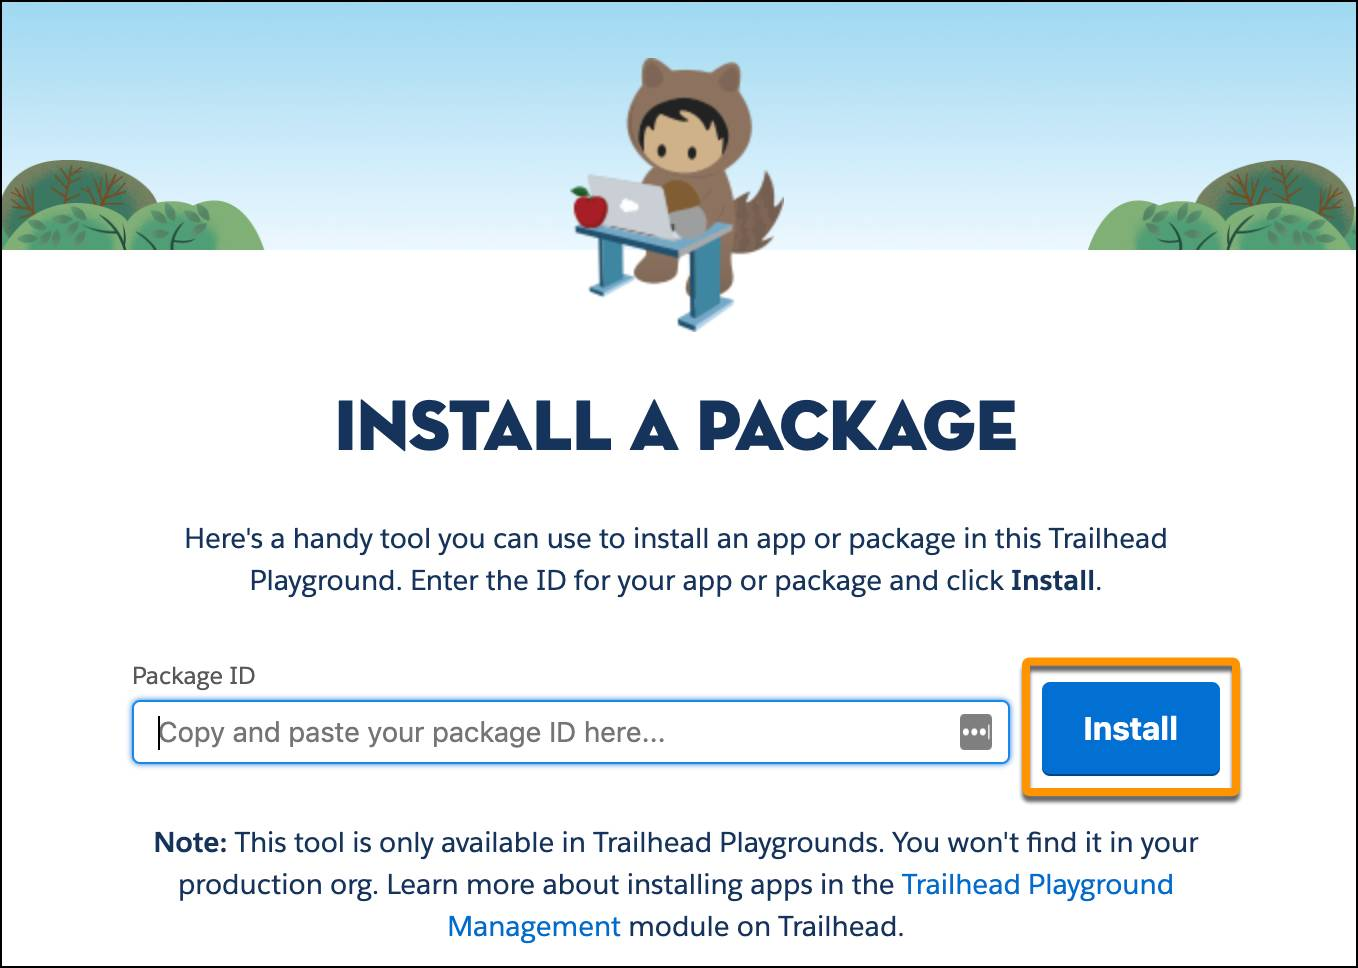 The Install a Package tap in the Trailhead Tips app